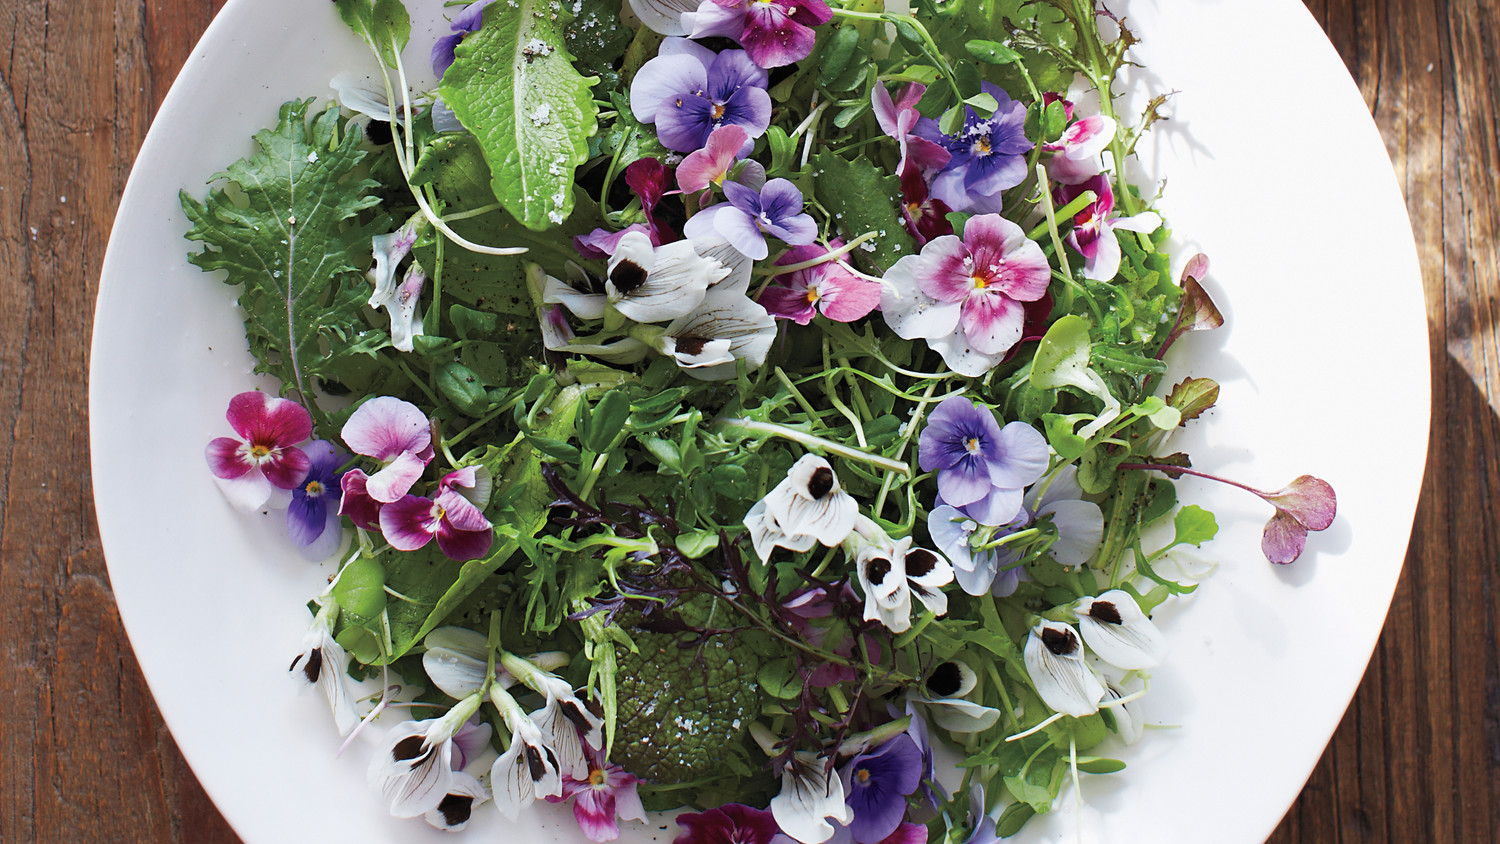 Green Salad With Edible Flowers Recipe Martha Stewart